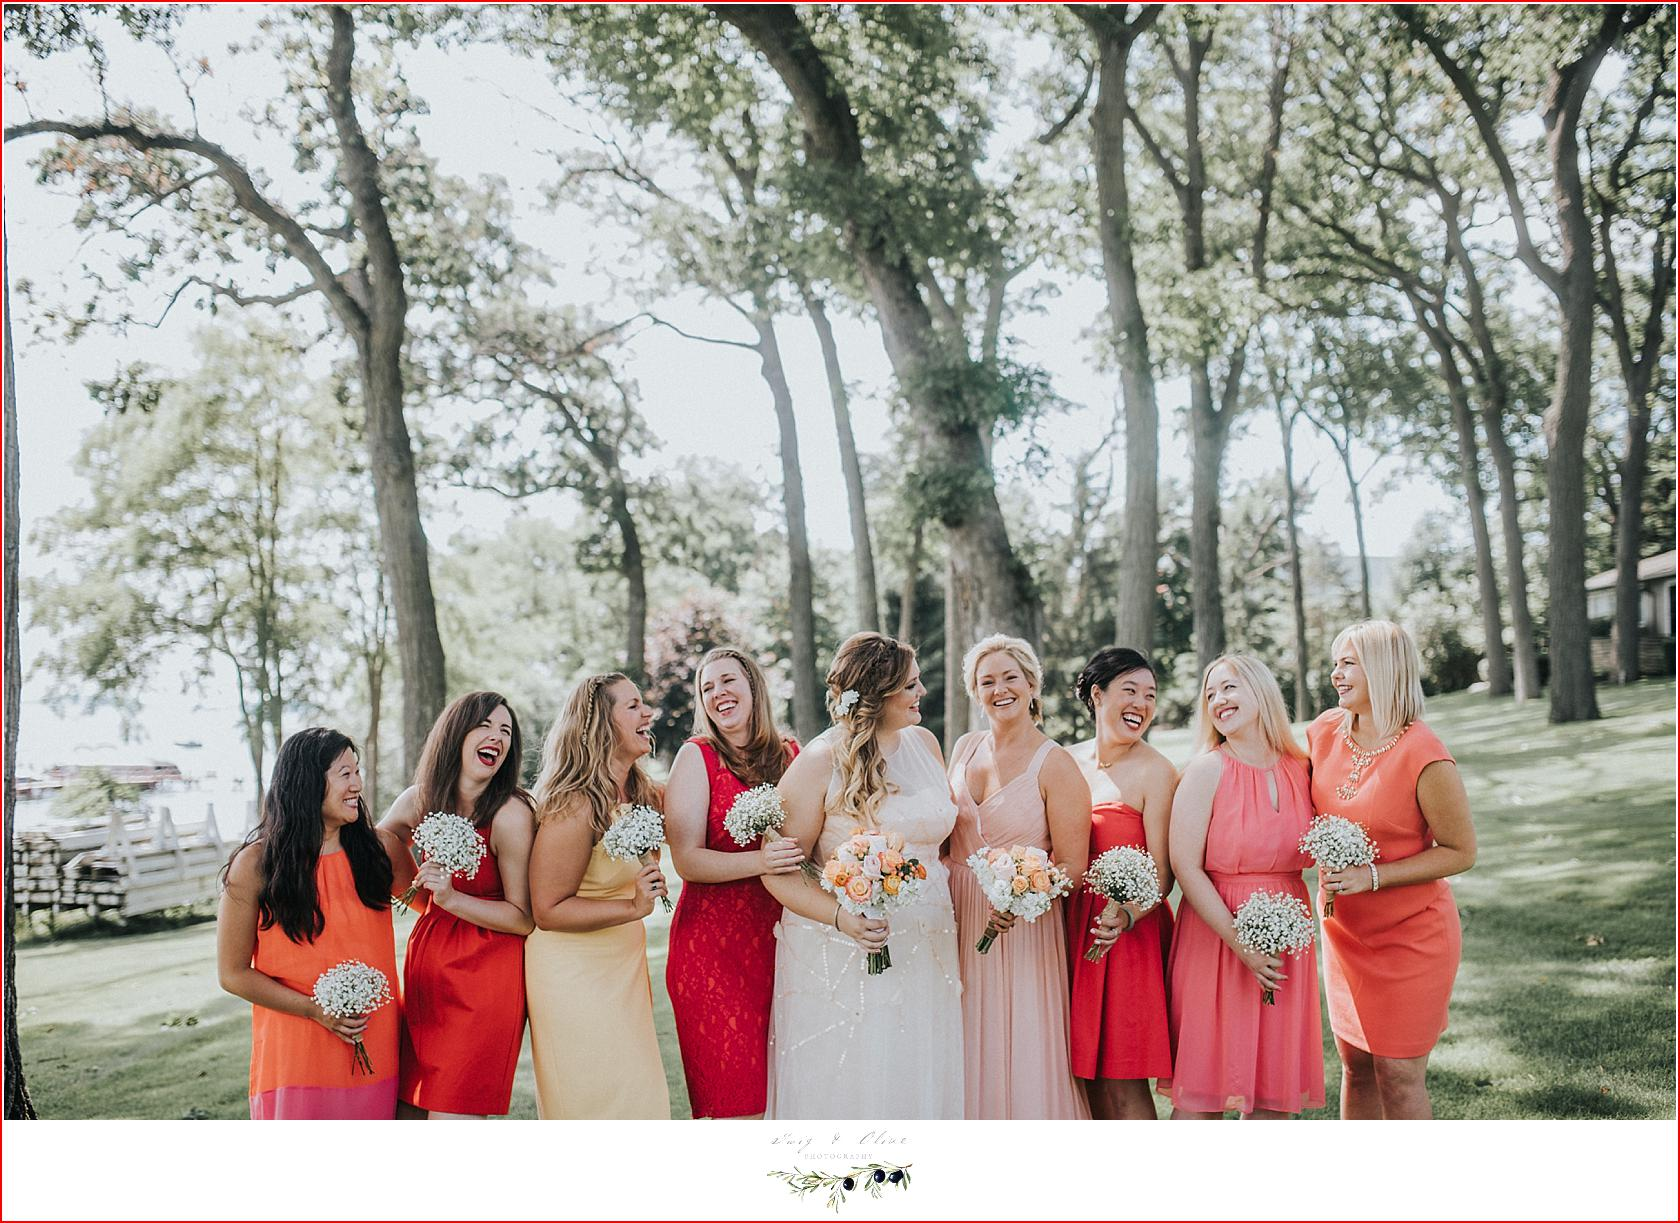 Twig olive photographytuscumbia golf course wedding green lake jew bridesmaid dresses in shades of pink ombrellifo Image collections